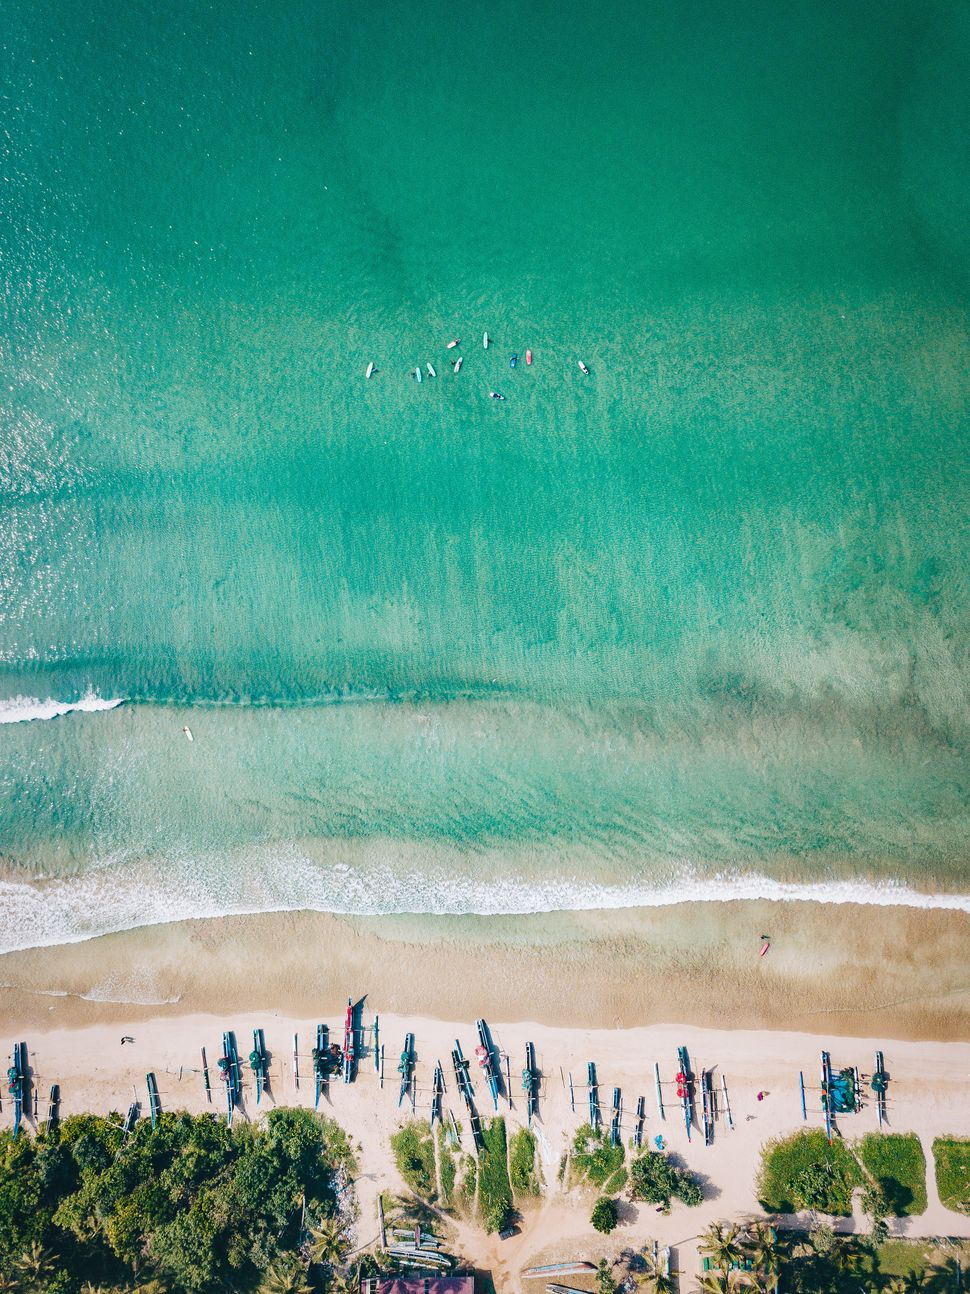 Drone images of Weligama beach in southern Sri